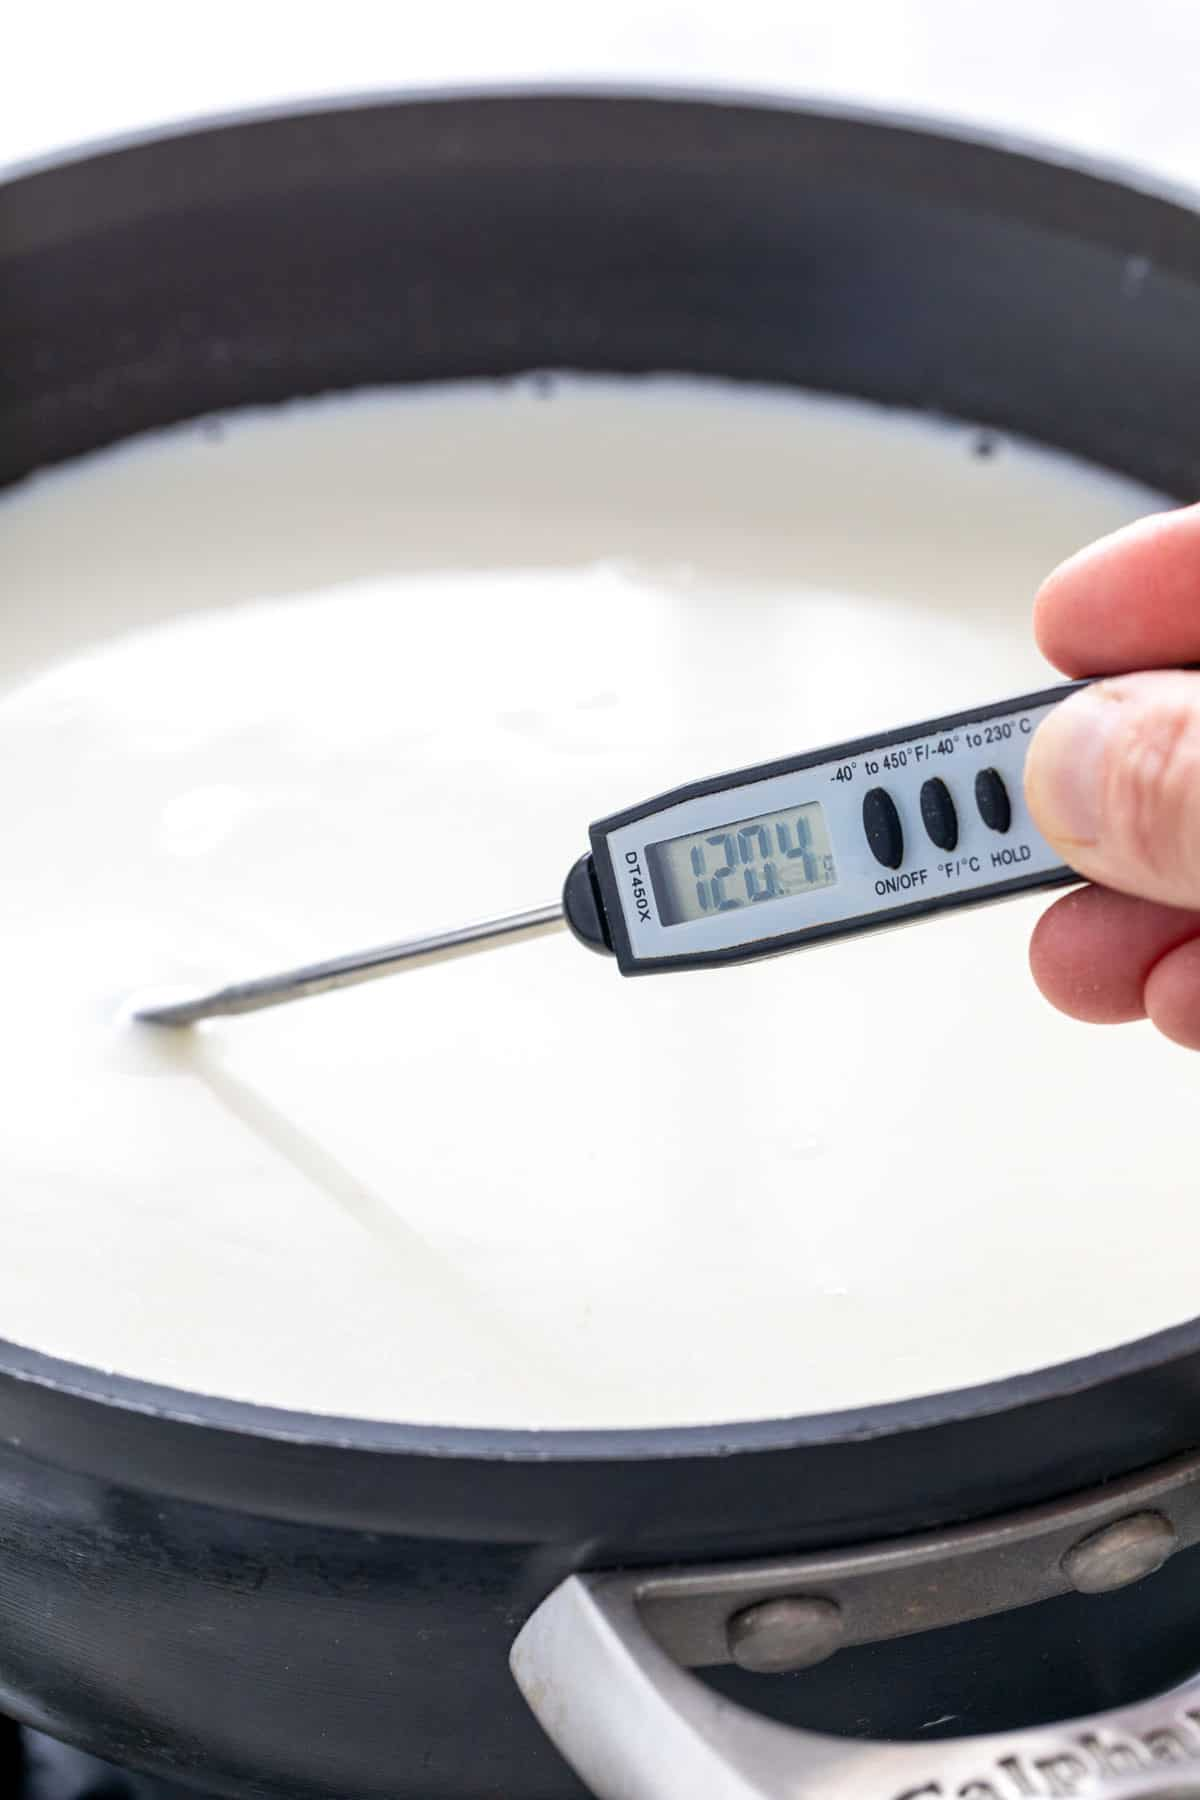 checking the temperature of milk in a saucepan